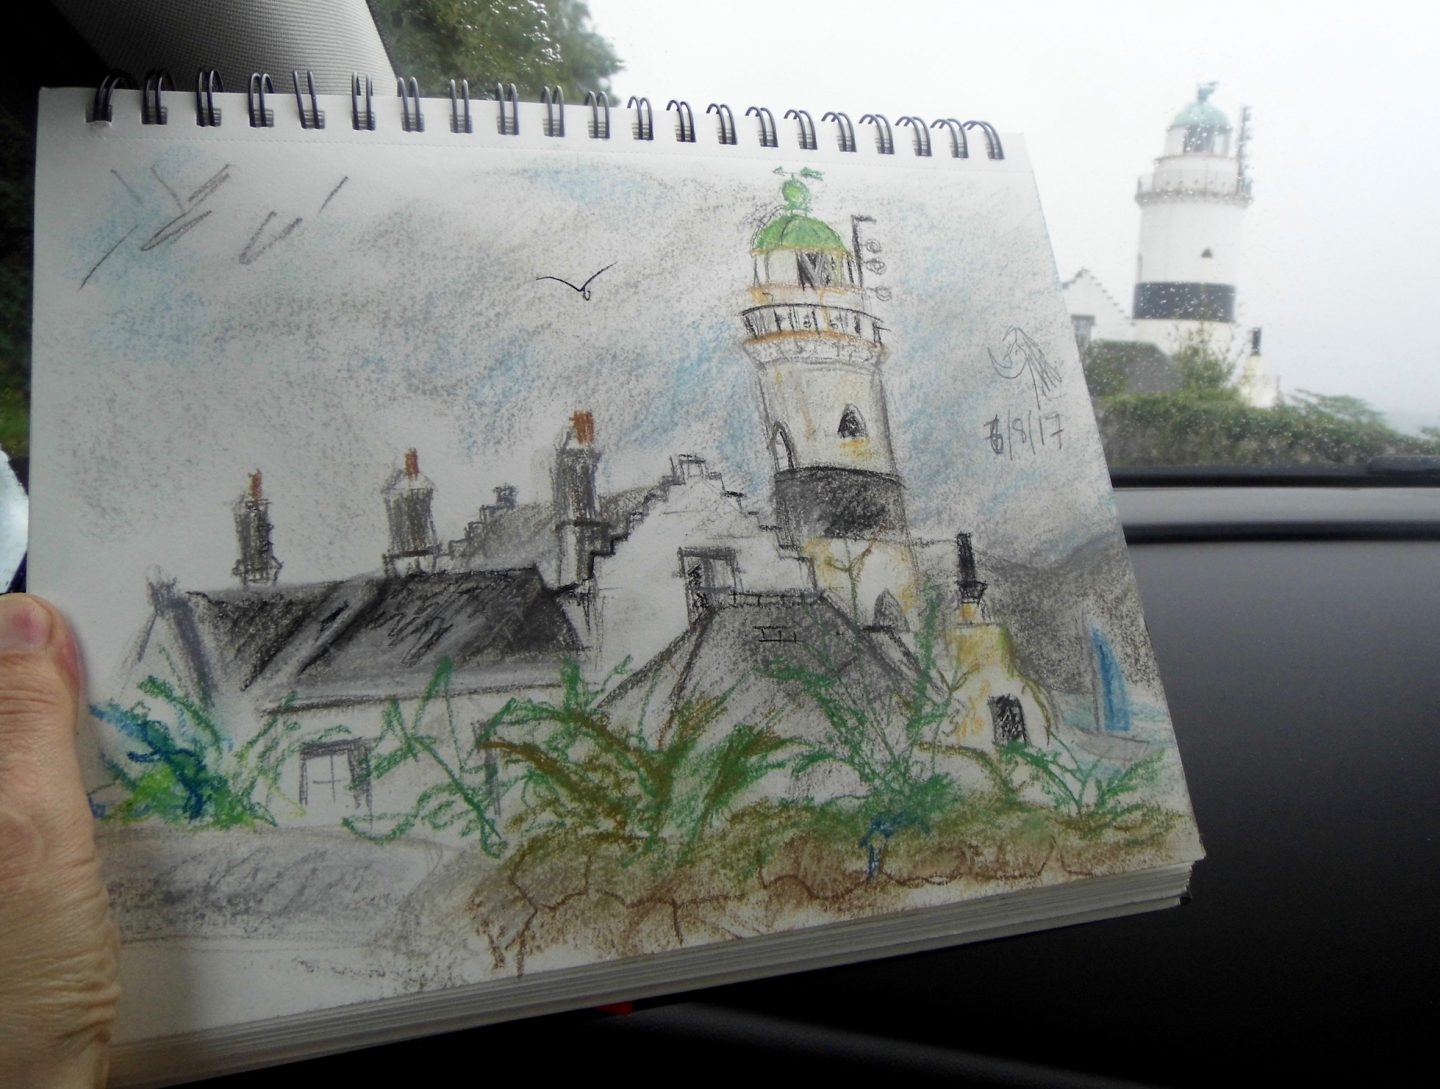 Pastel sketch of Cloch lighthouse Gourock in Scotland by Emerald Dunne artist on a rainy summer day